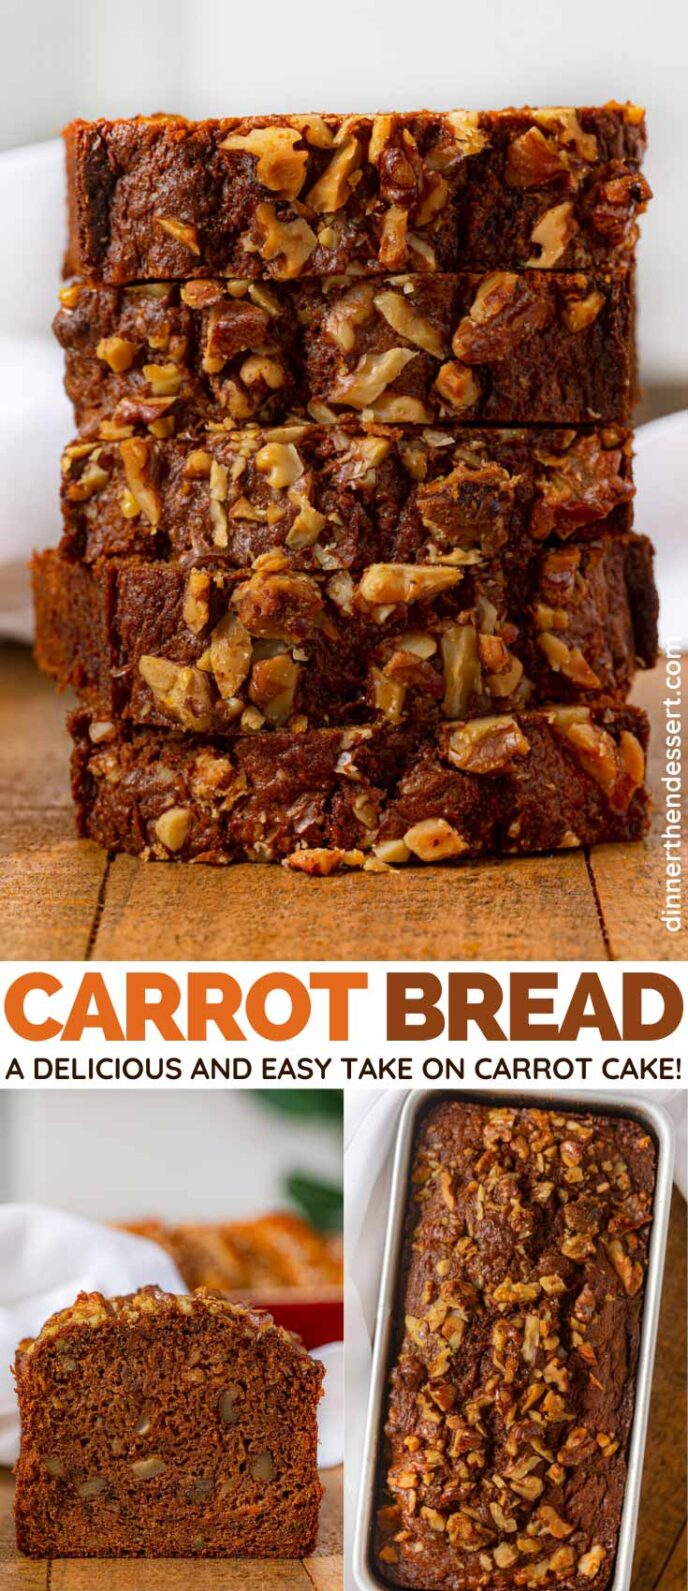 Carrot Bread collage